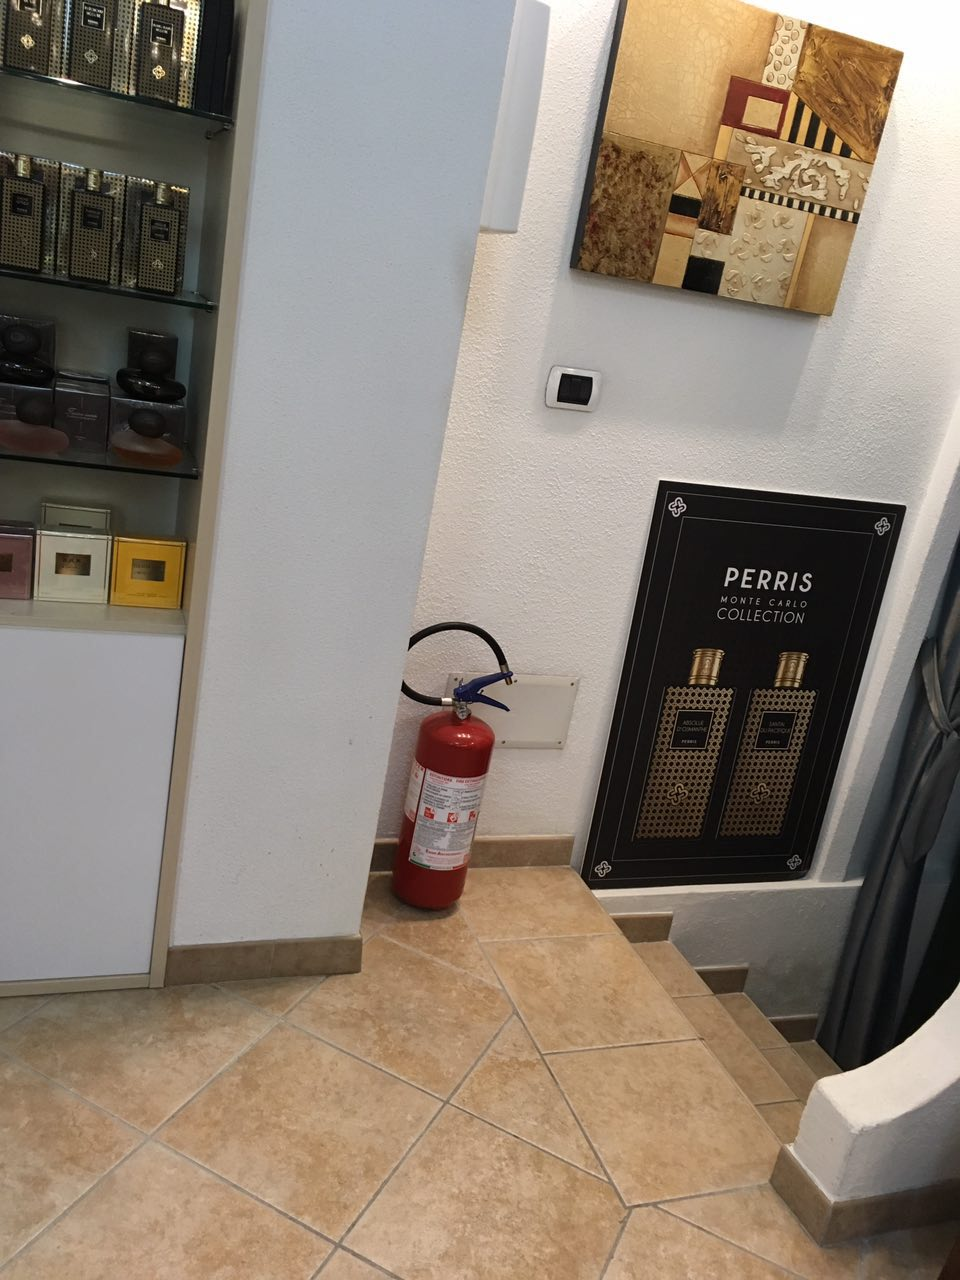 extinguishers, fire extinguishers, stores extinguishers, fire safety in shops